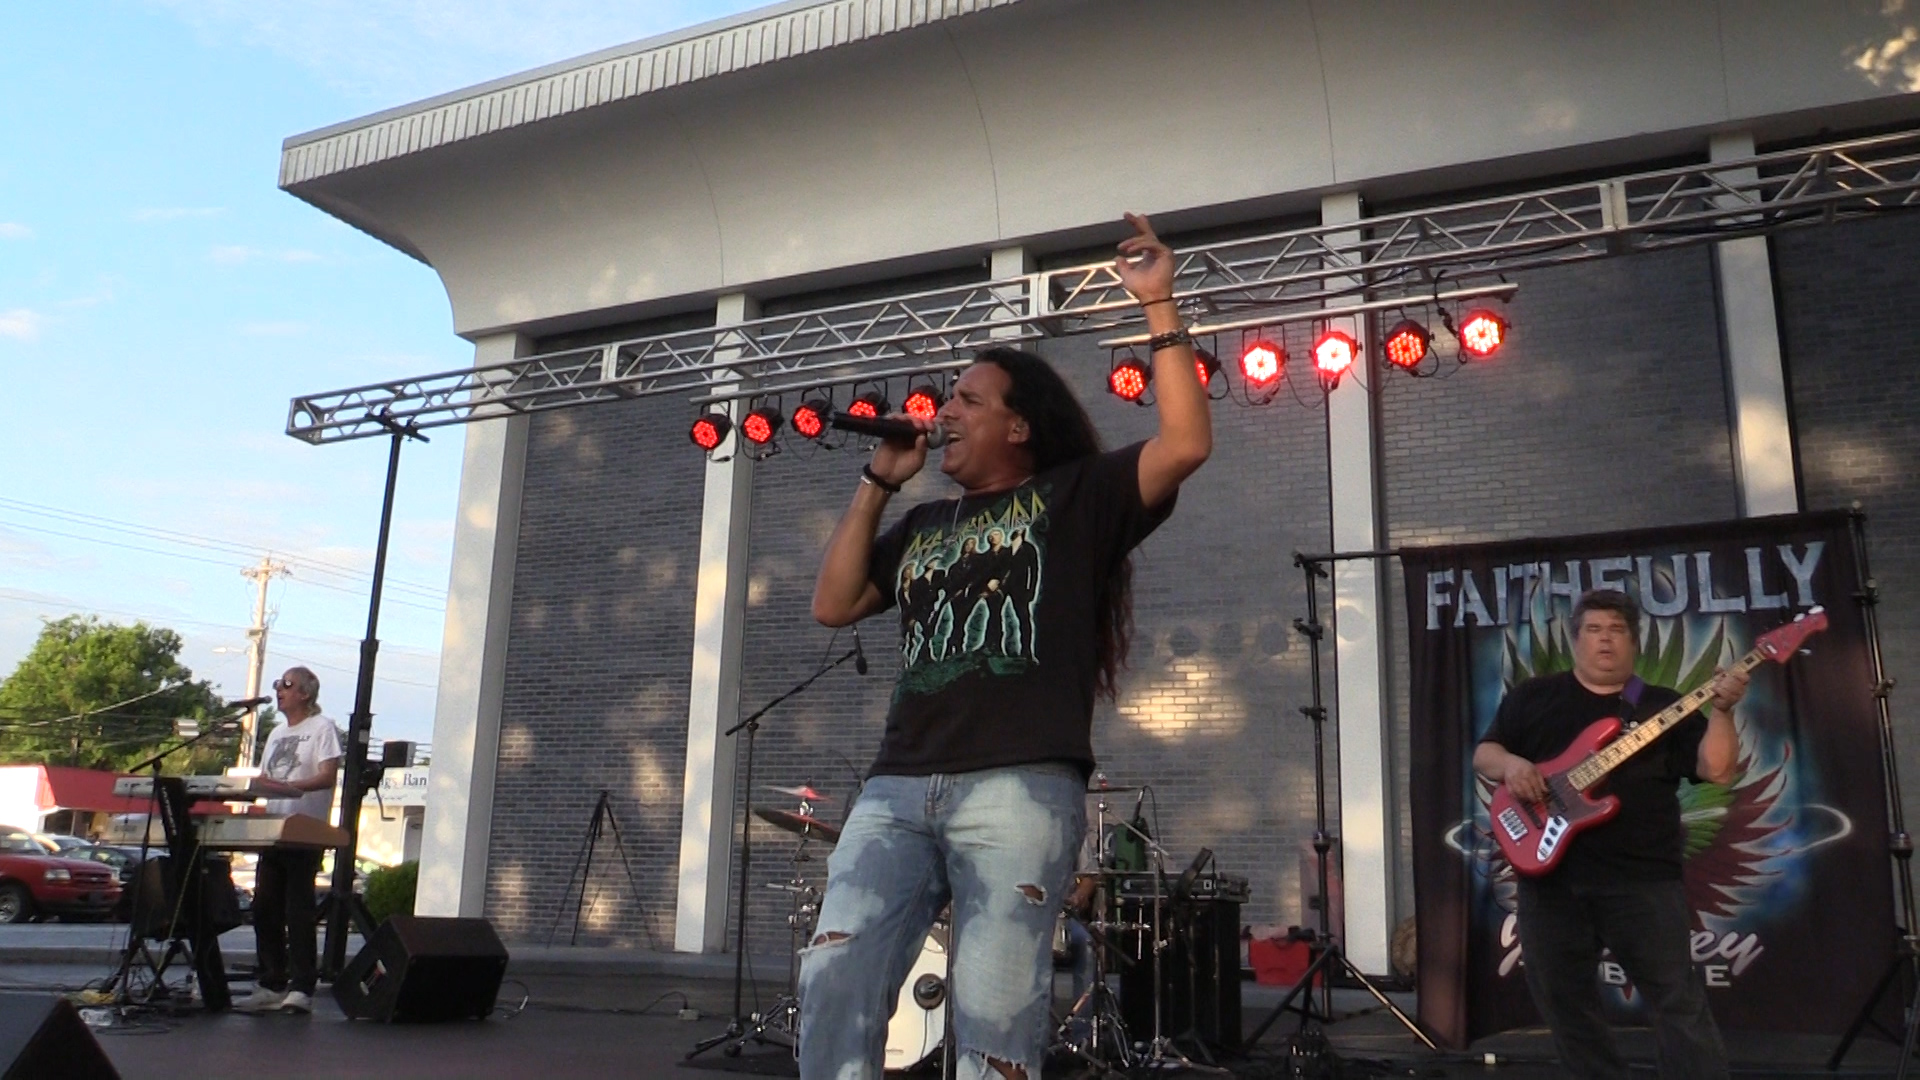 VIDEO: Faithfully performs at Main Street Live